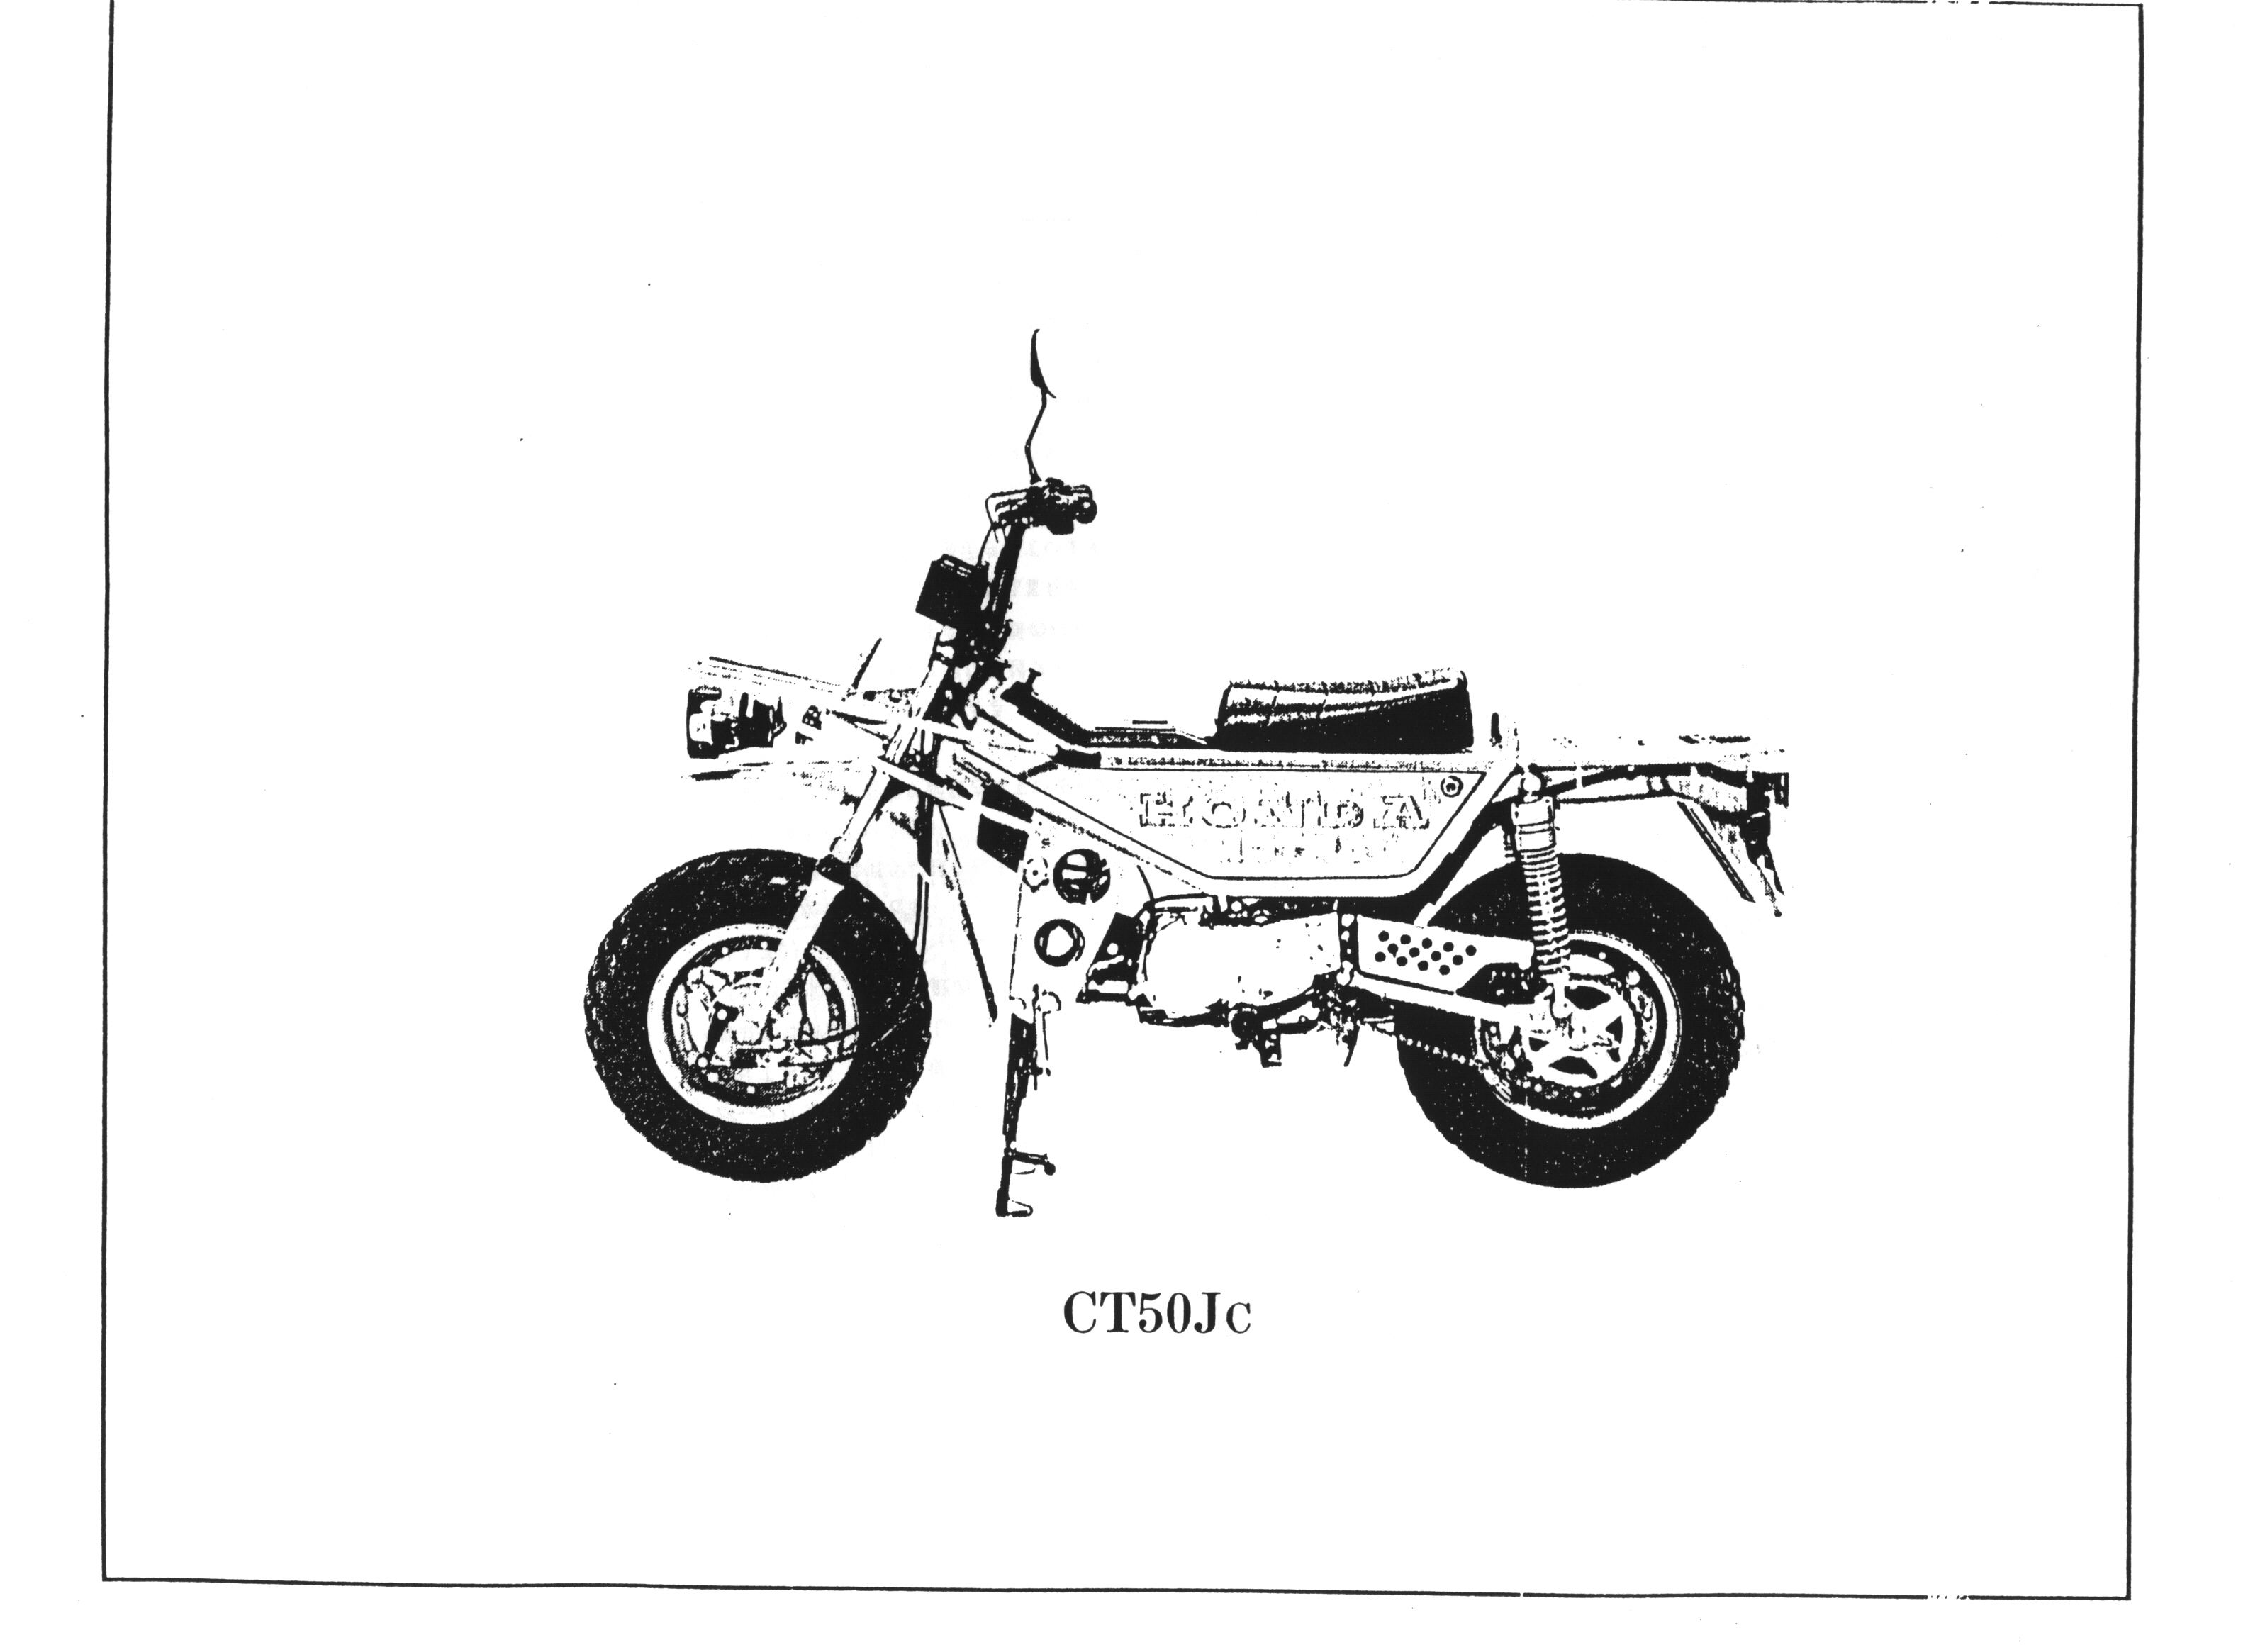 Parts List for CT50J Motra (Japanese)